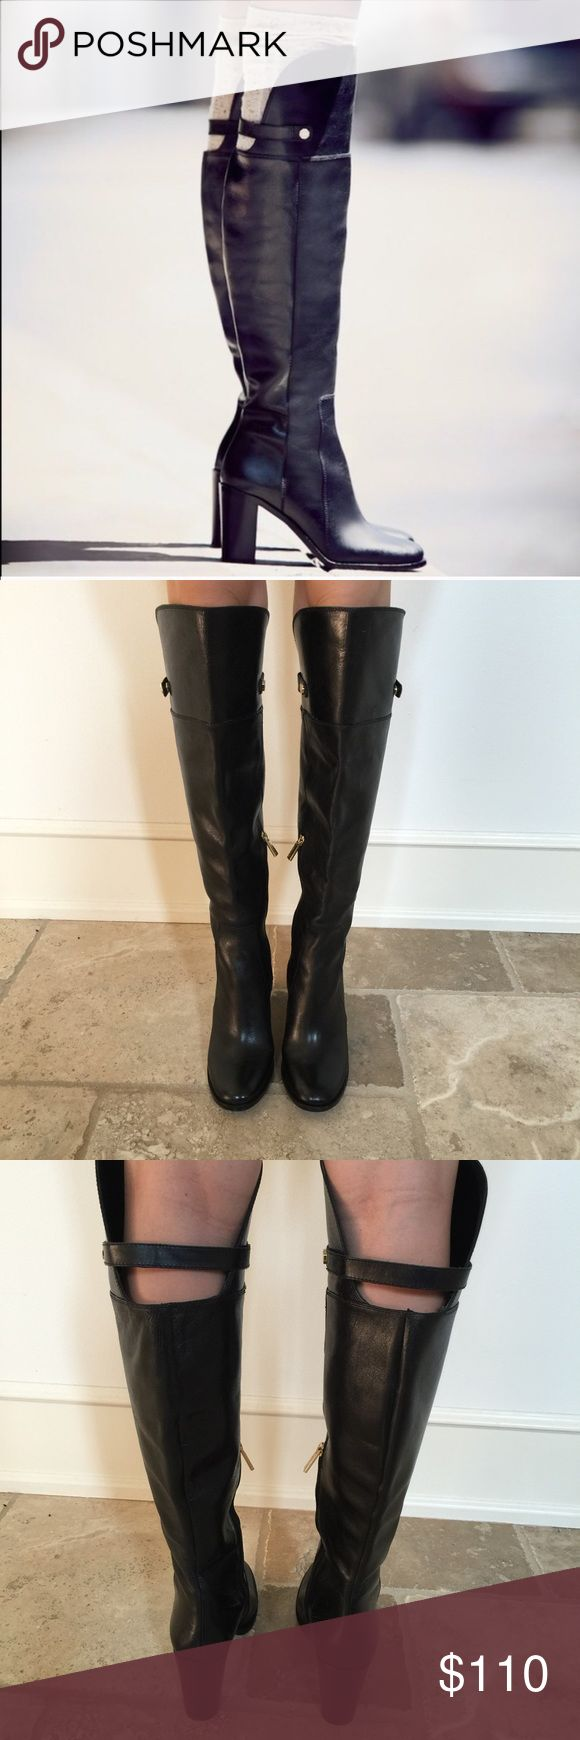 Louise et Cie Over the knee Boots NWOT *SALE* Beautiful leather black knee high boots! Perfect for fall!!! Never worn and are in new condition! Jeans can fit inside of them. Gold hardware and the leather is very nice Purchased from Nordstrom. No trades Louise et Cie Shoes Over the Knee Boots